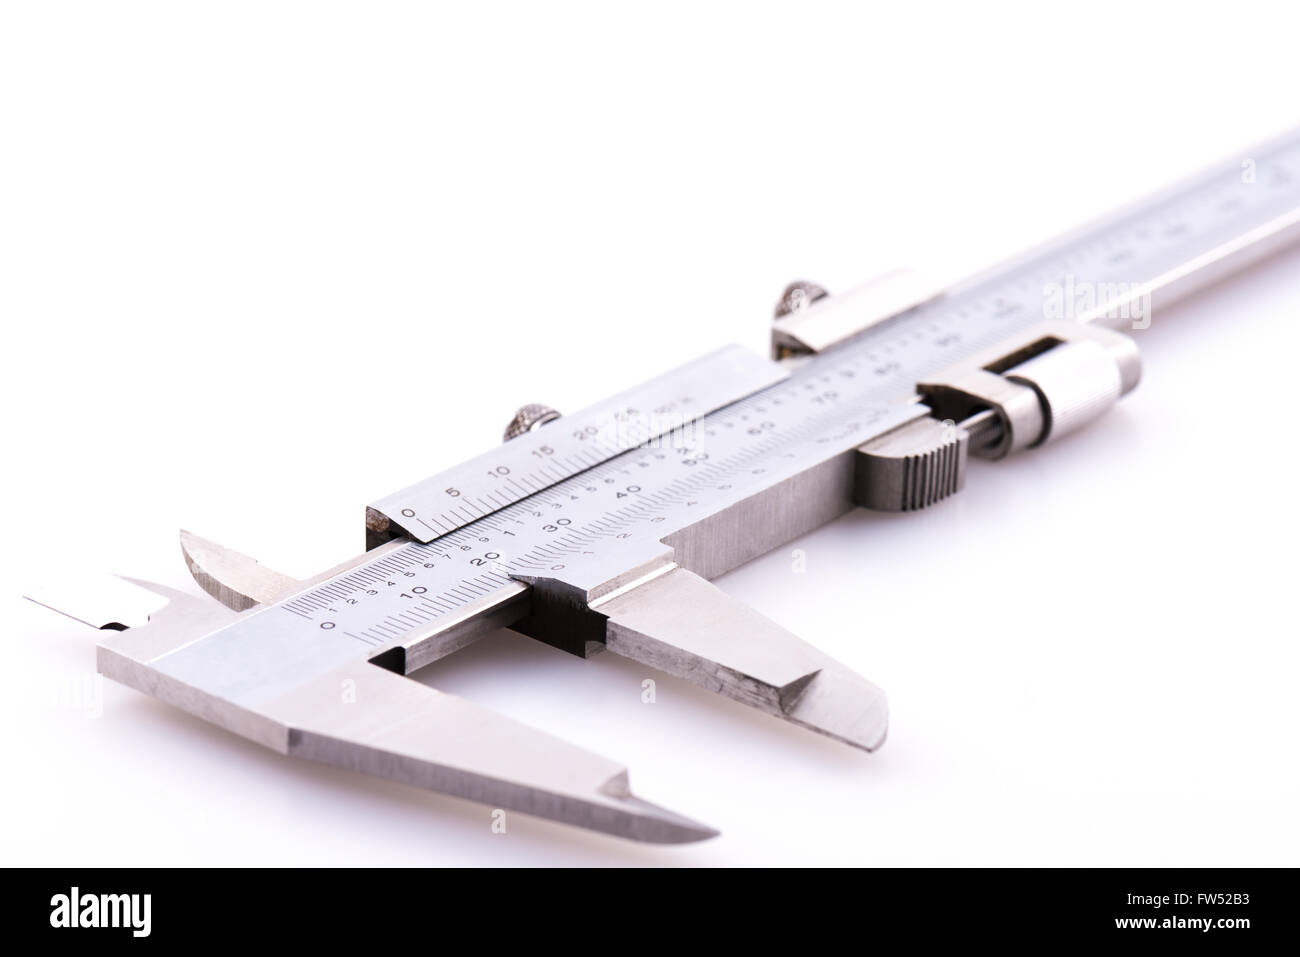 Close up of a set of vernier calipers on a white background - Stock Image